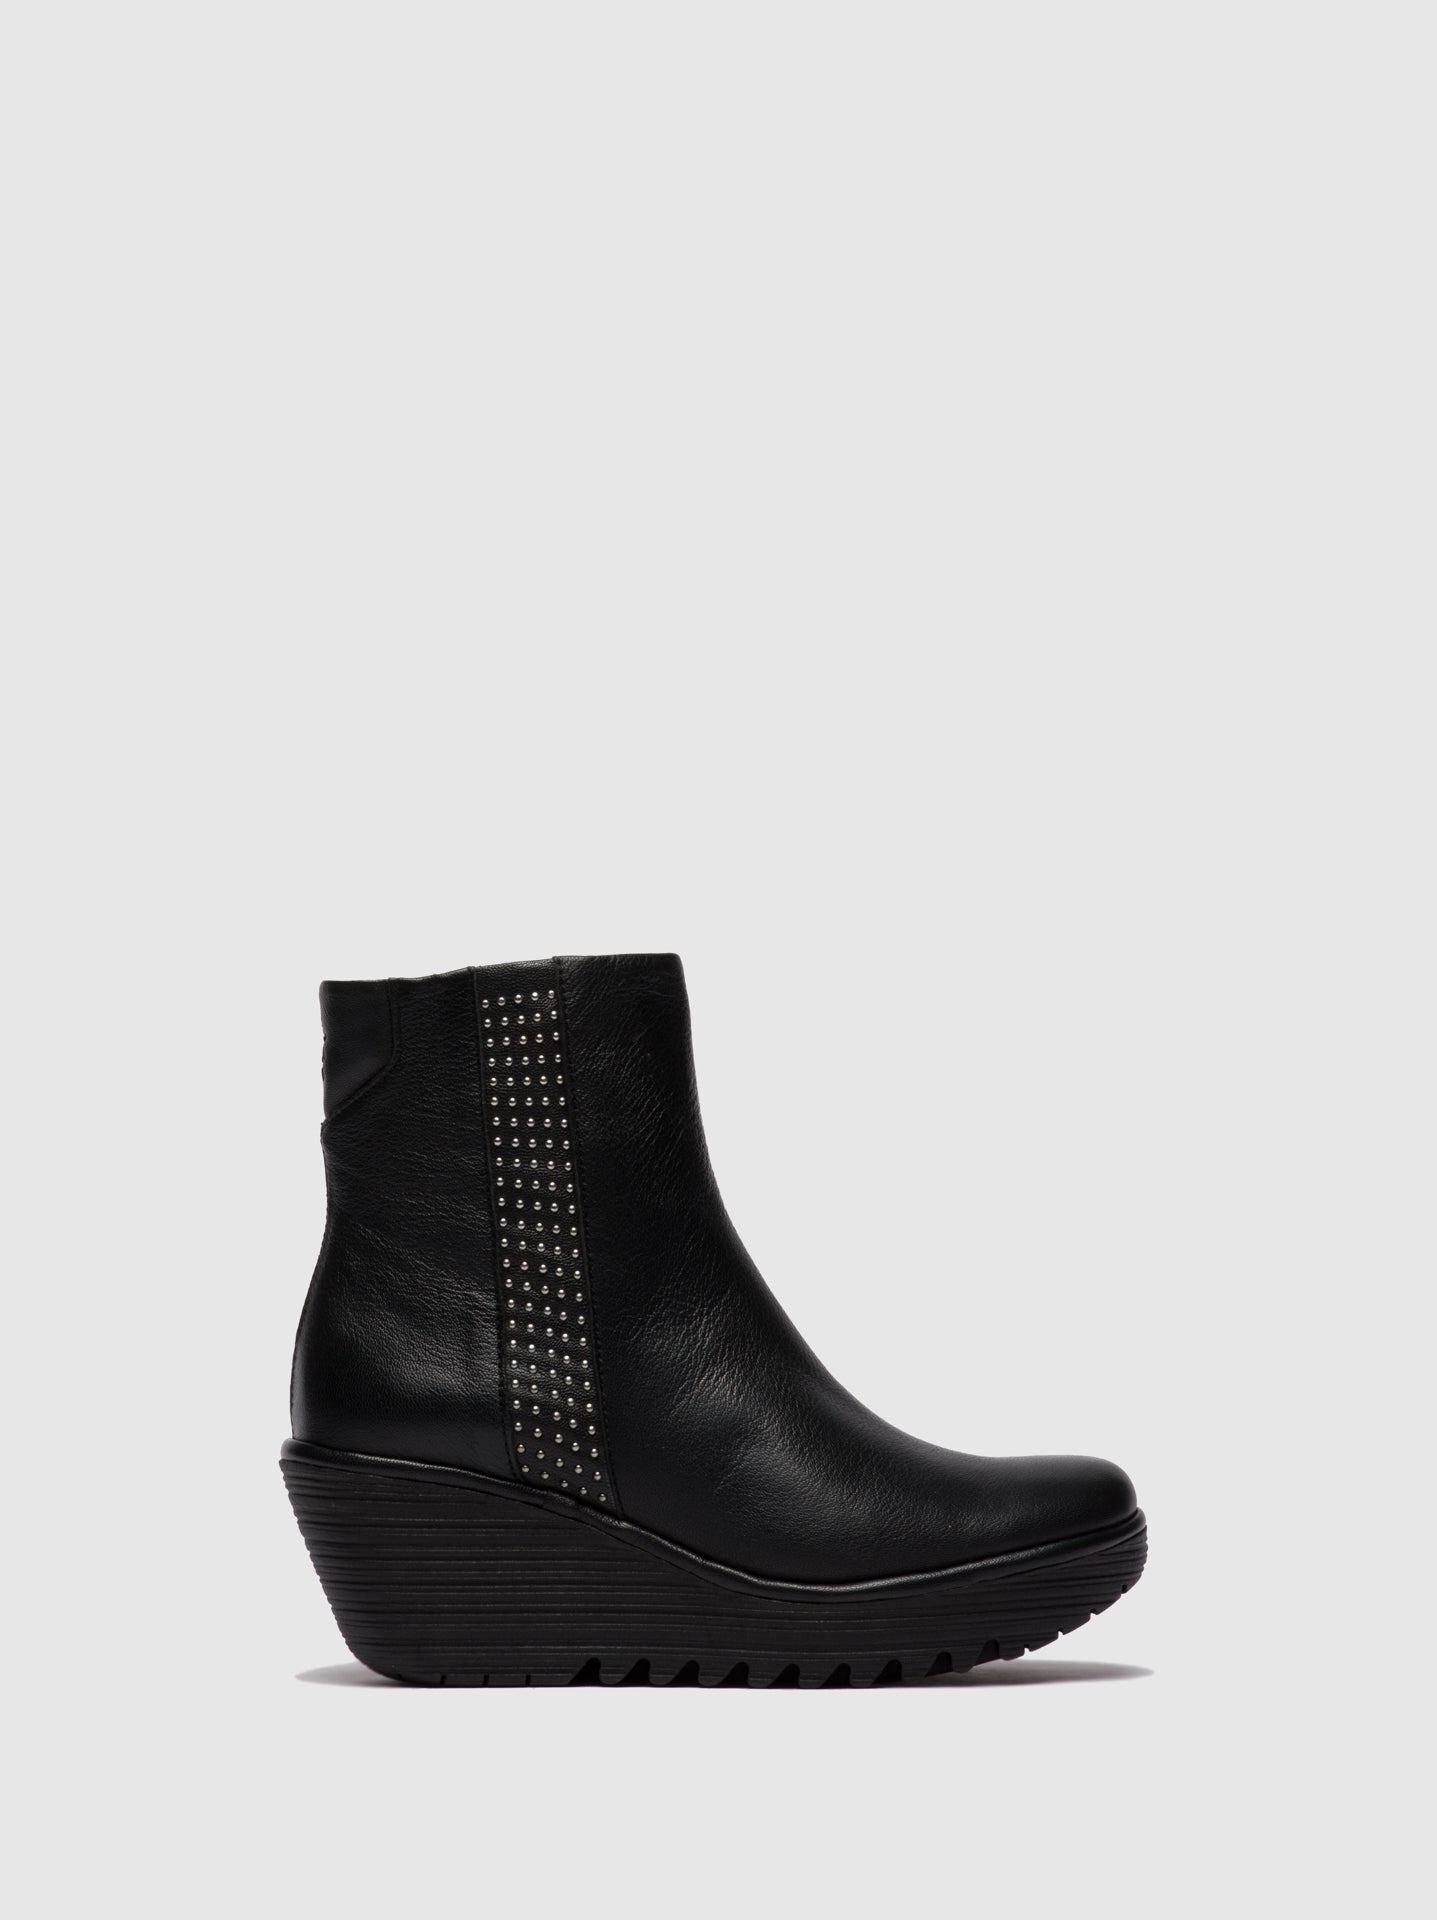 Fly London Zip Up Ankle Boots YULU252FLY STUD MOUSSE BLACK